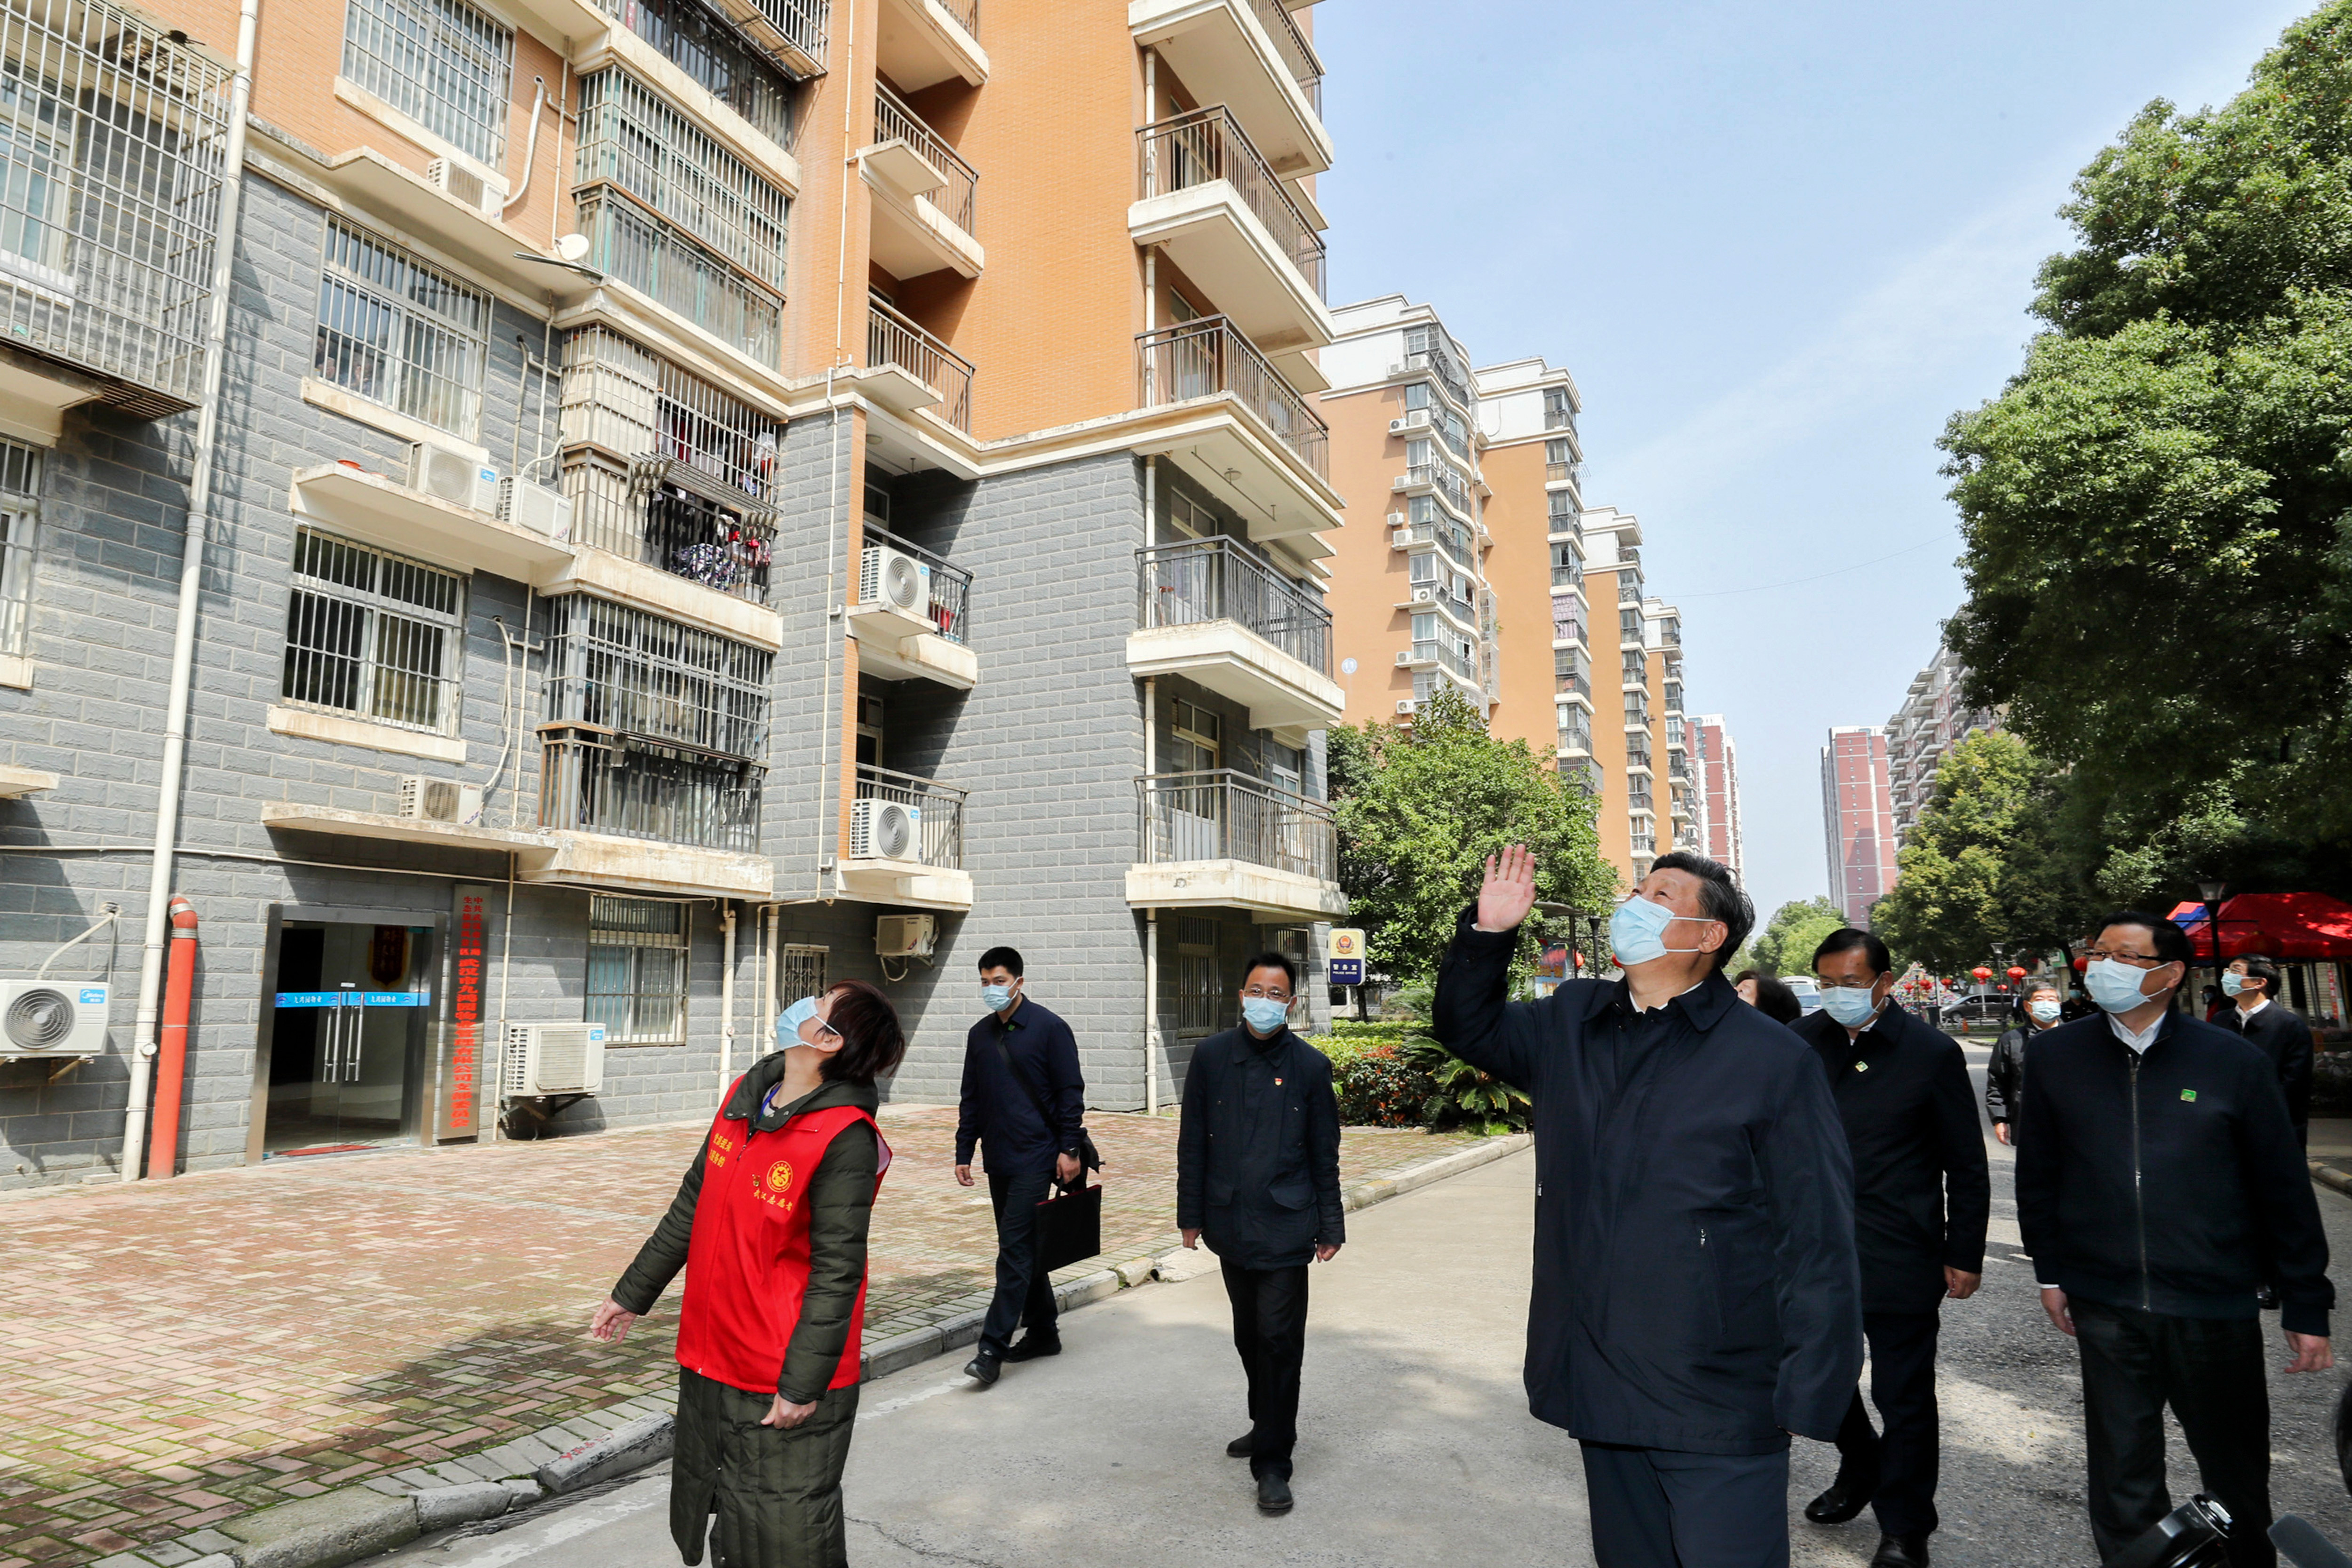 President Xi Jinping waves to residents in quarantine during his visit to Wuhan earlier this month